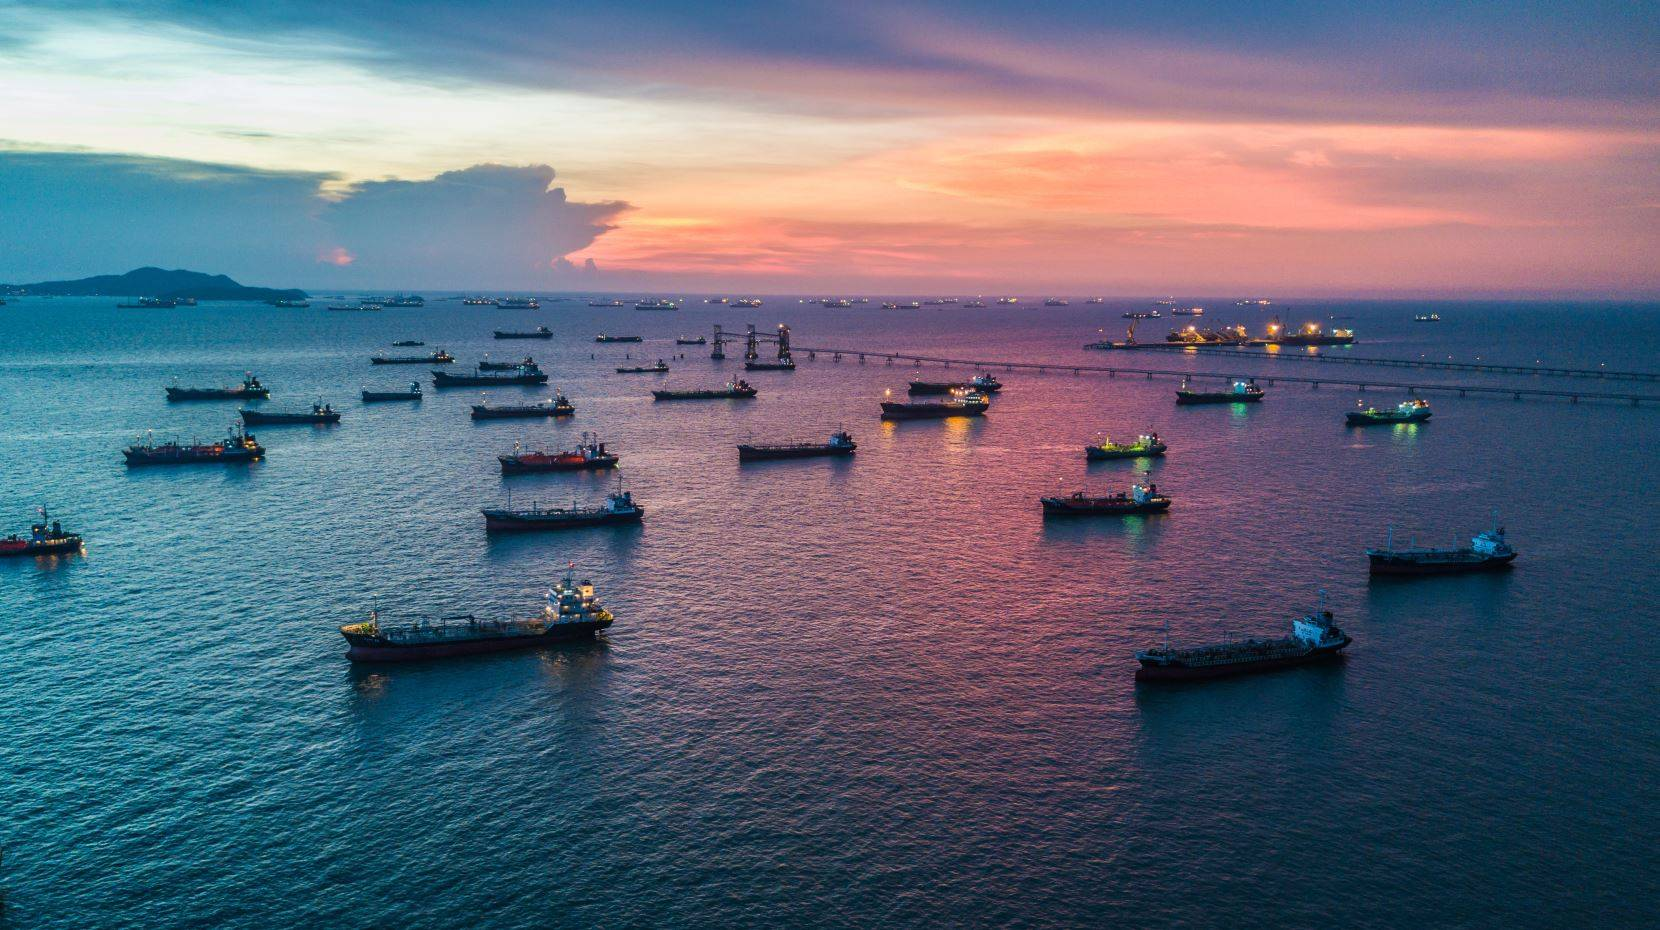 Container ships waiting in harbor due to unprecedented congestion